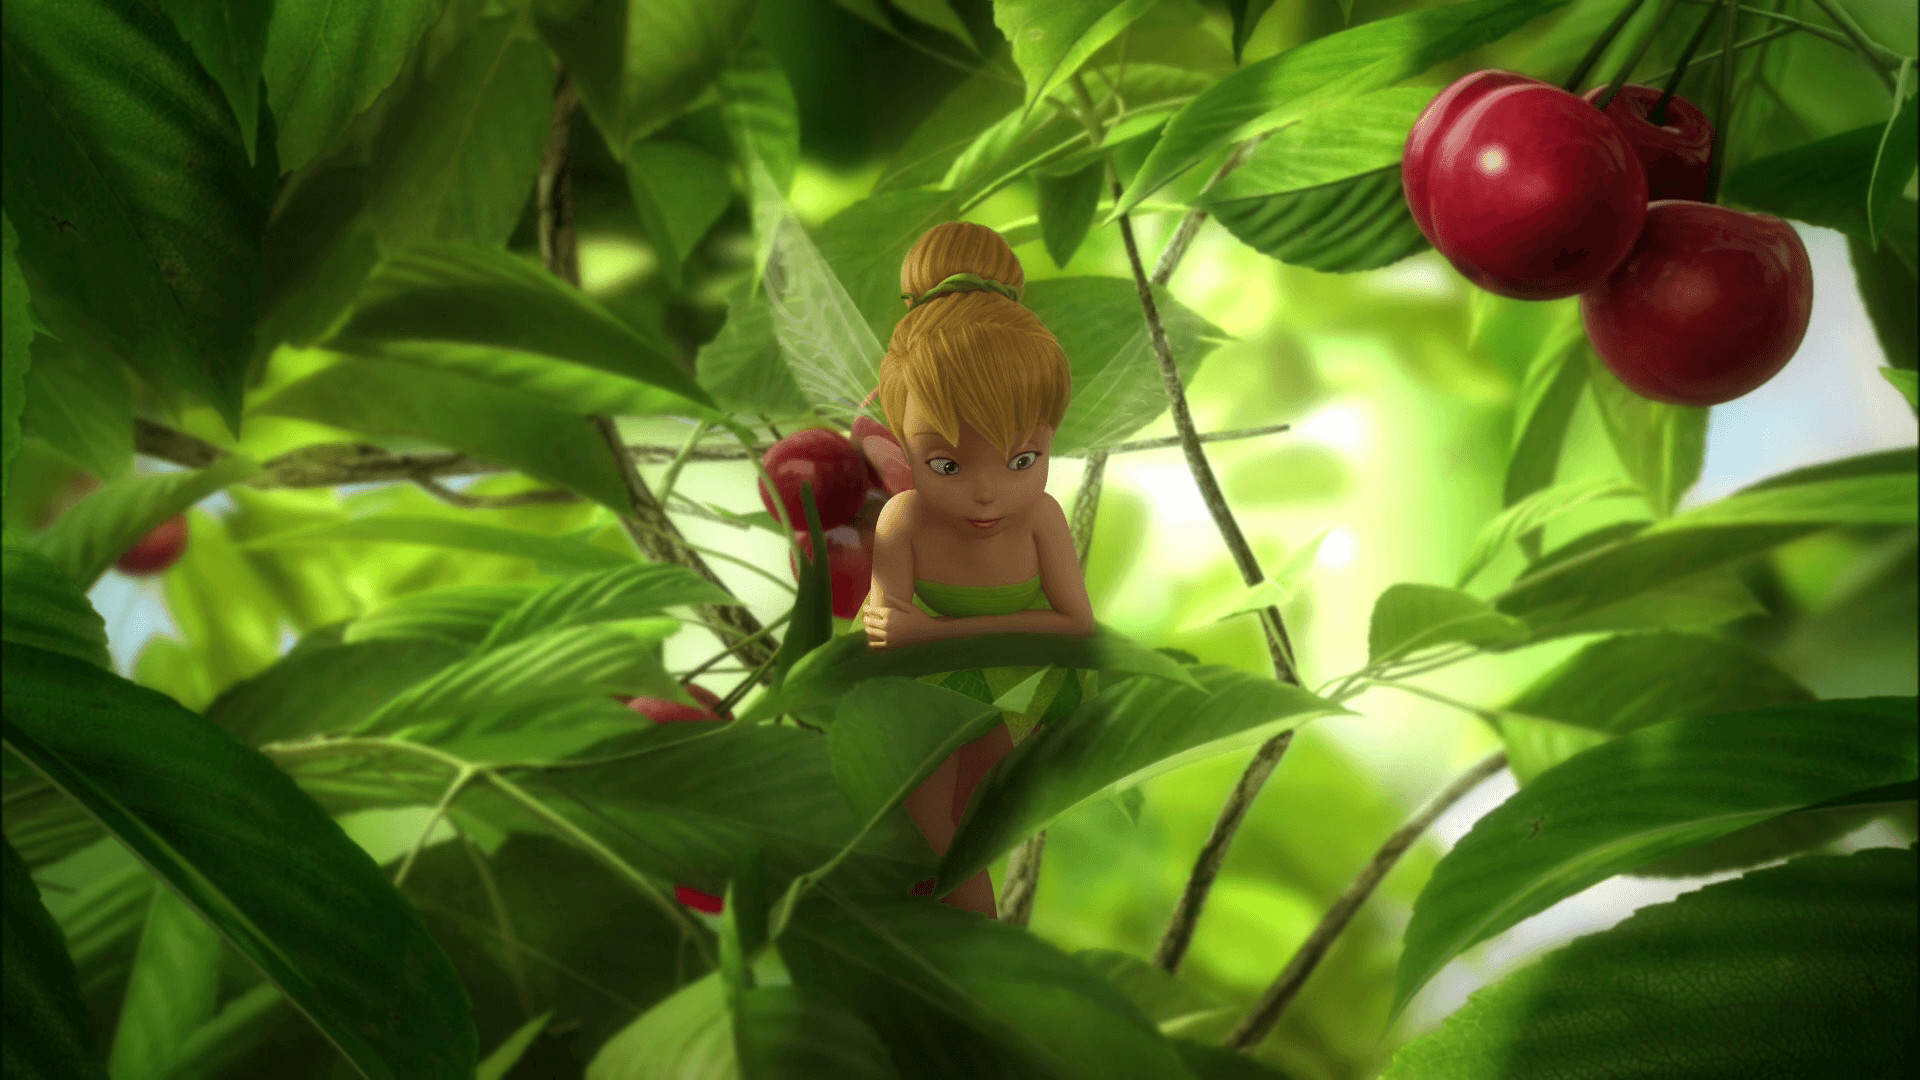 Tinkerbell Wallpapers HD | HD Wallpapers, Backgrounds, Images, Art ..